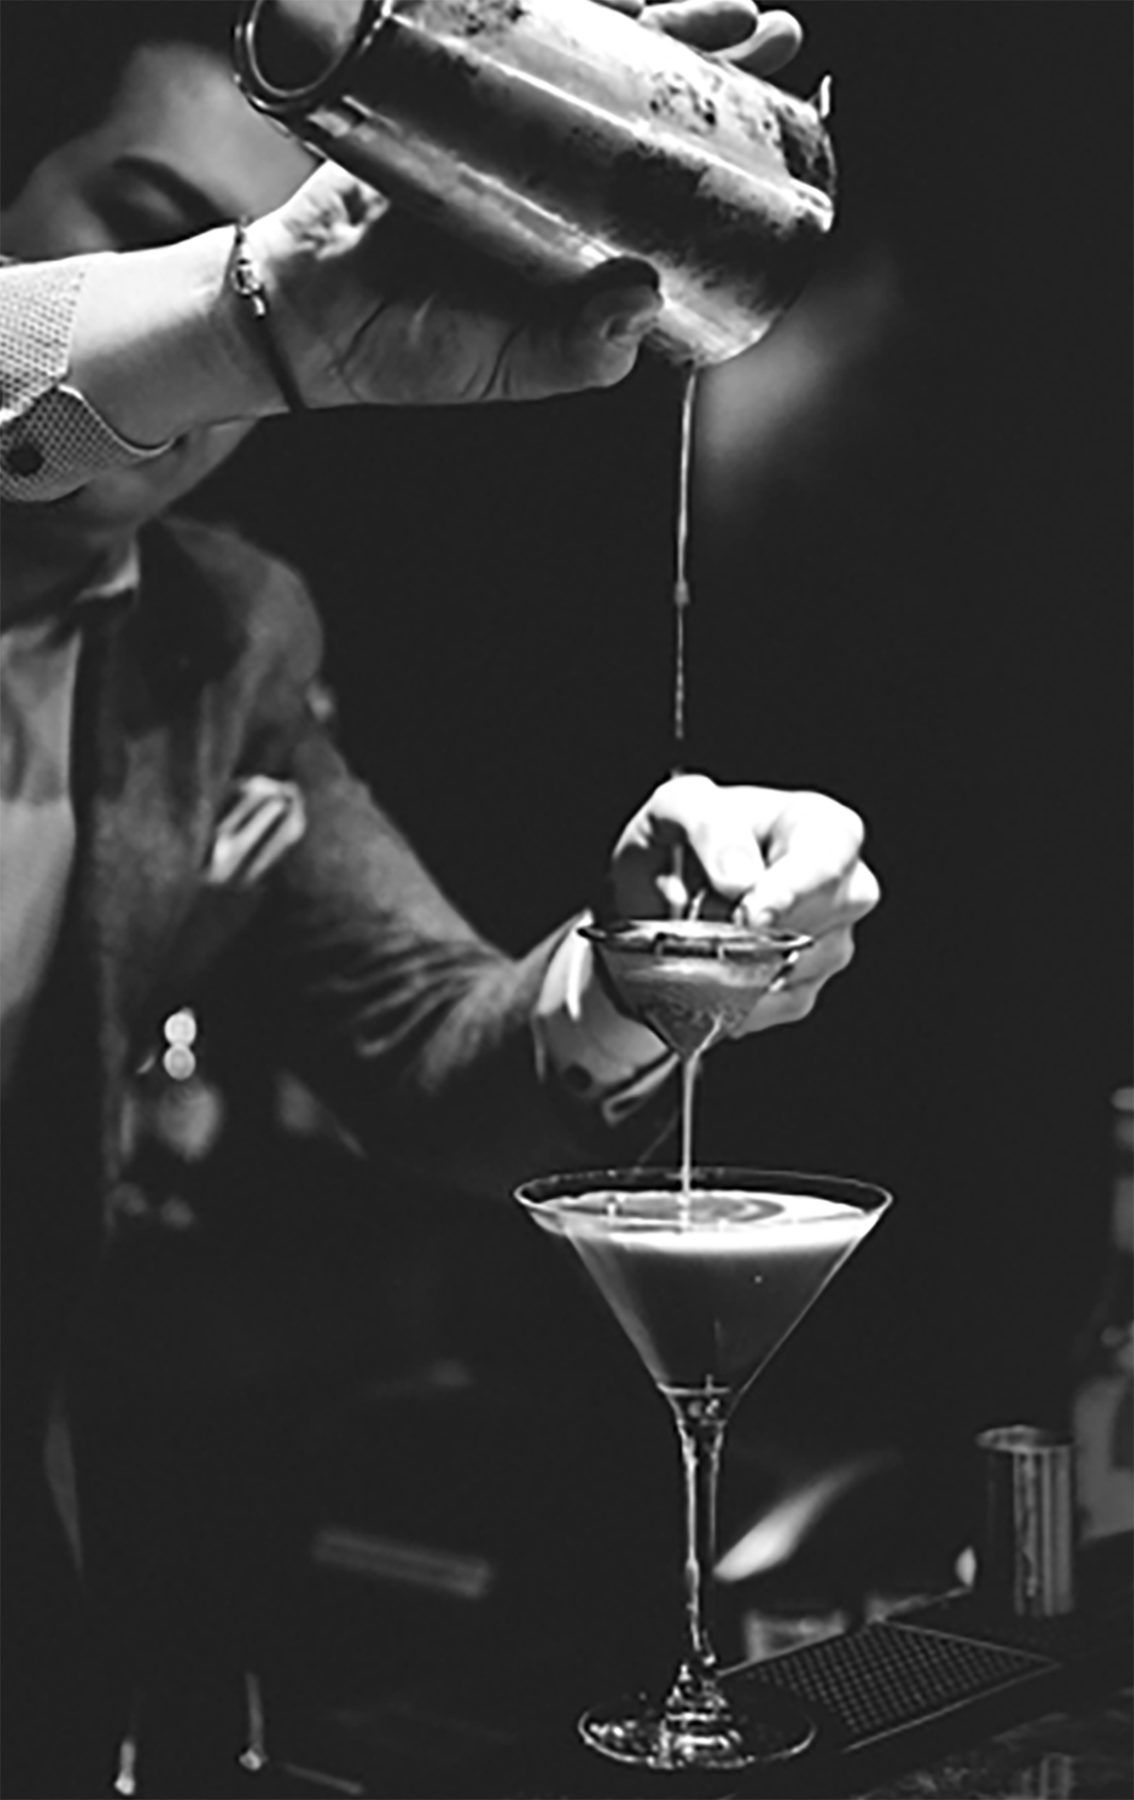 Man pouring cocktail